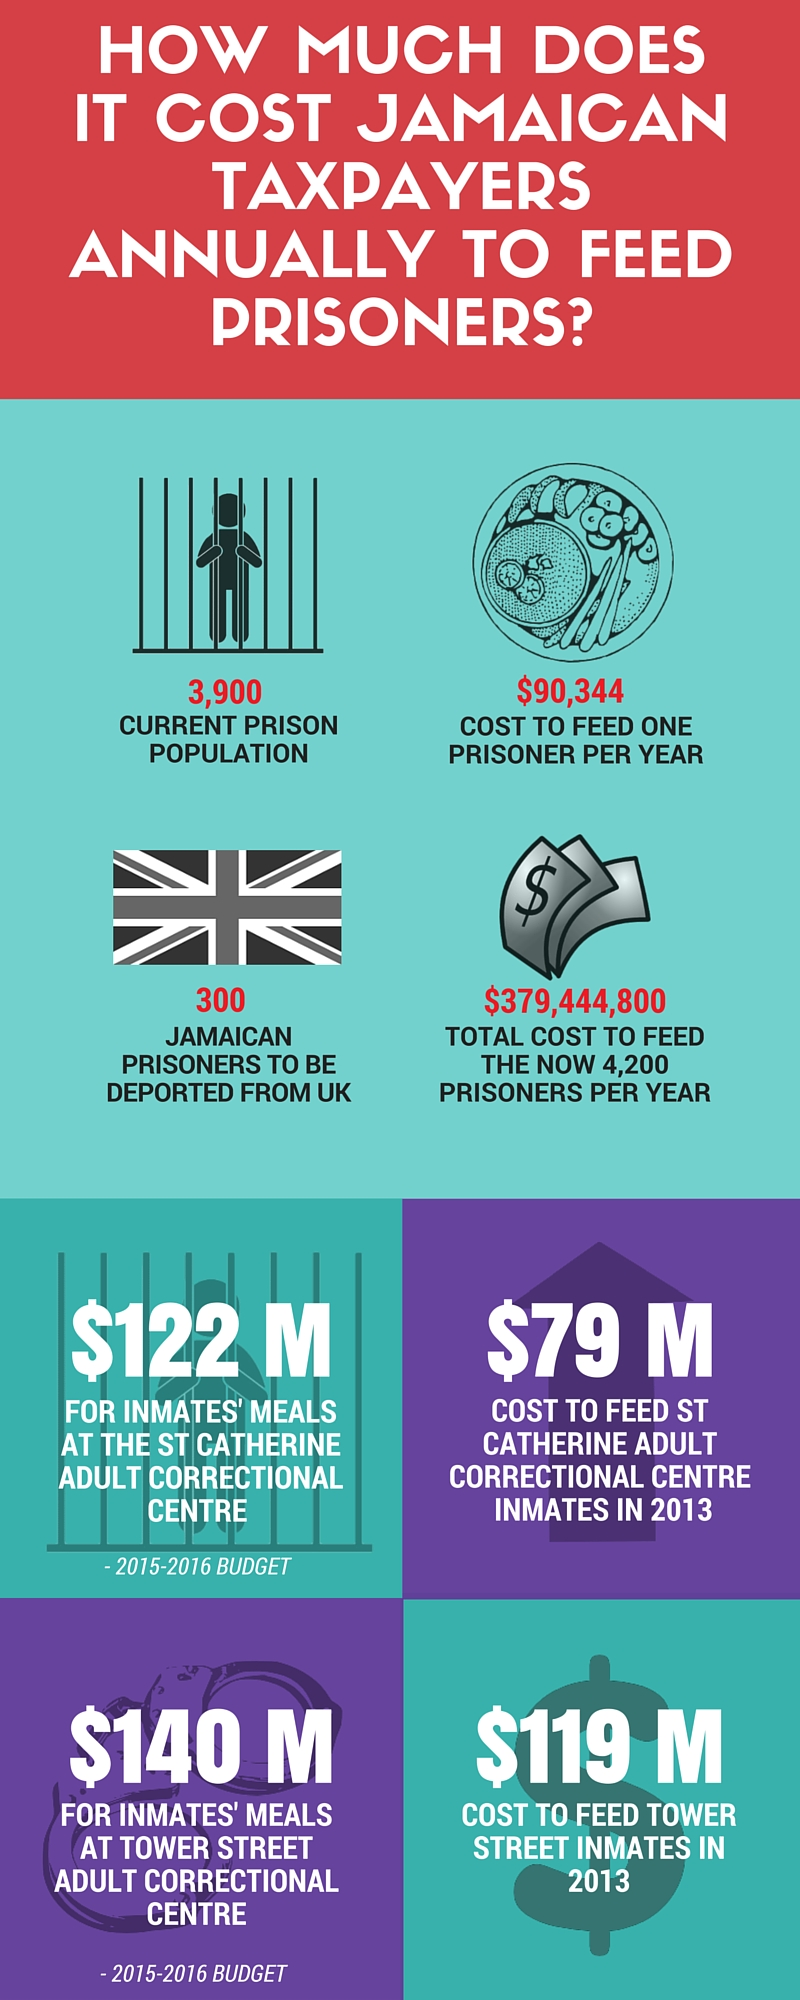 How Much Does It Cost Taxpayers To Feed Prison Inmates